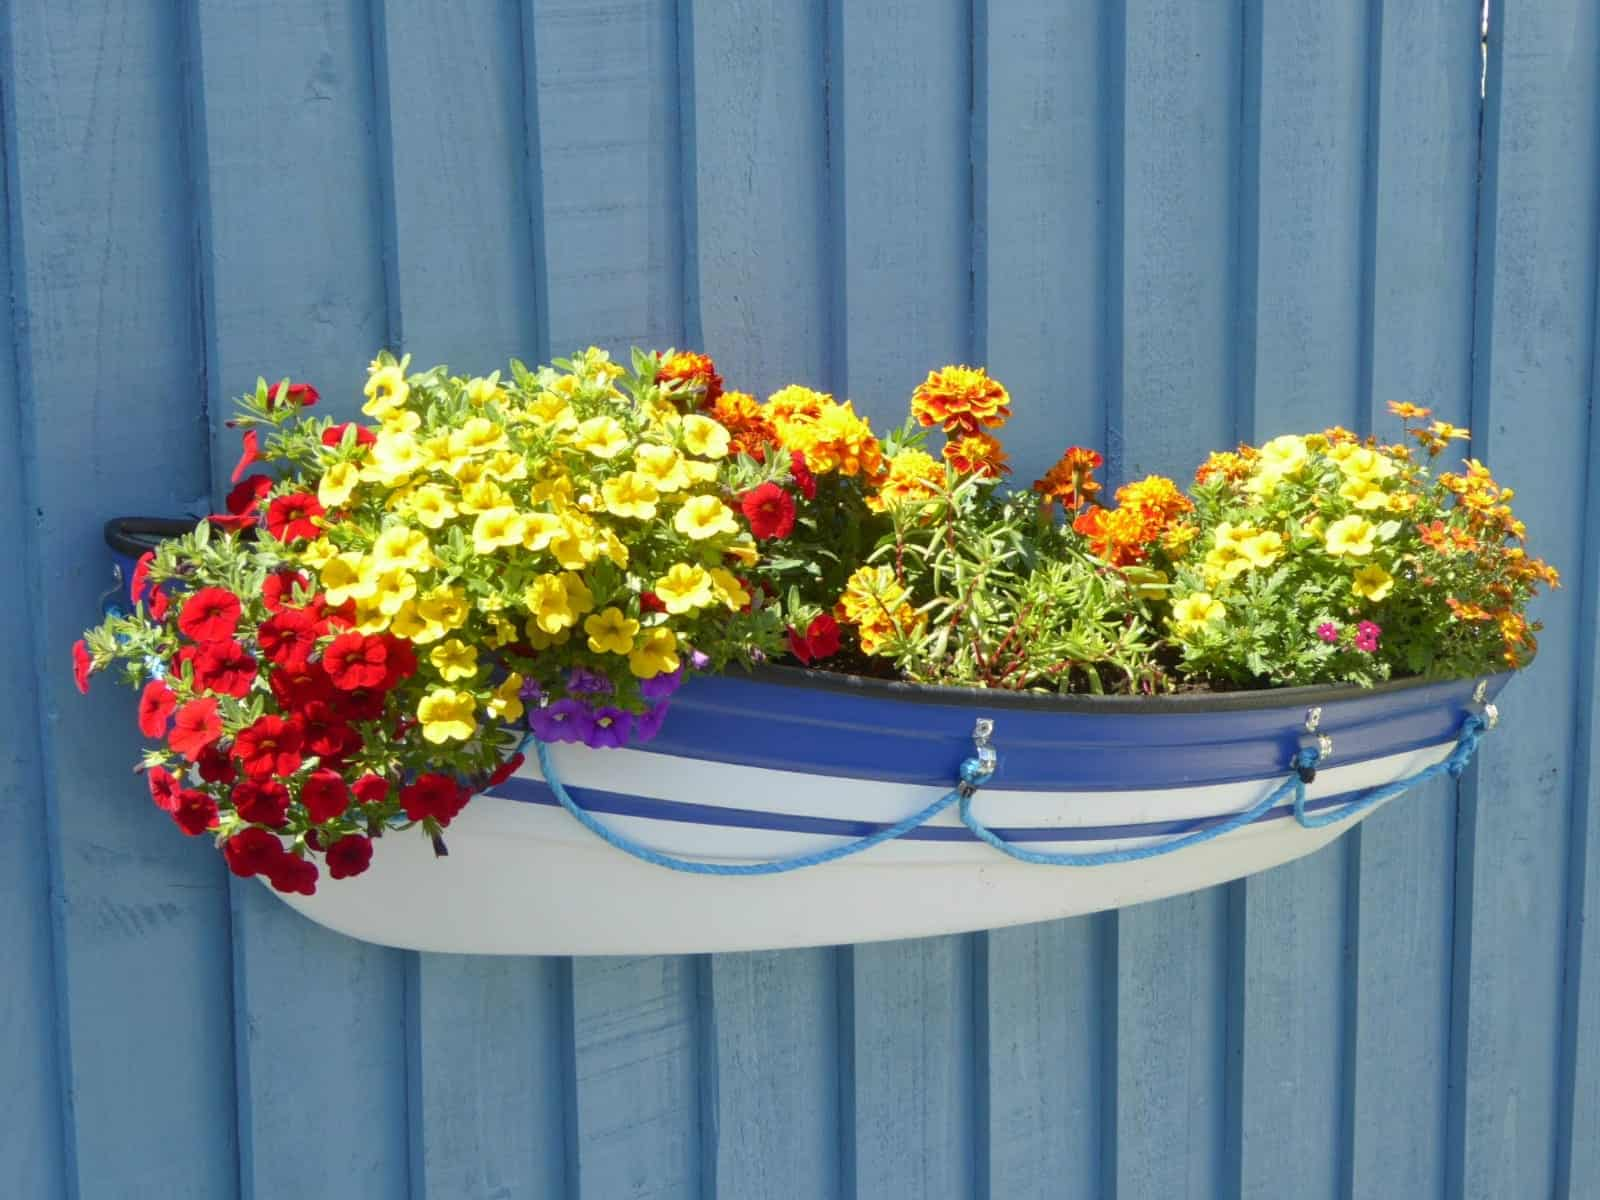 Blue band customers Boat Planter